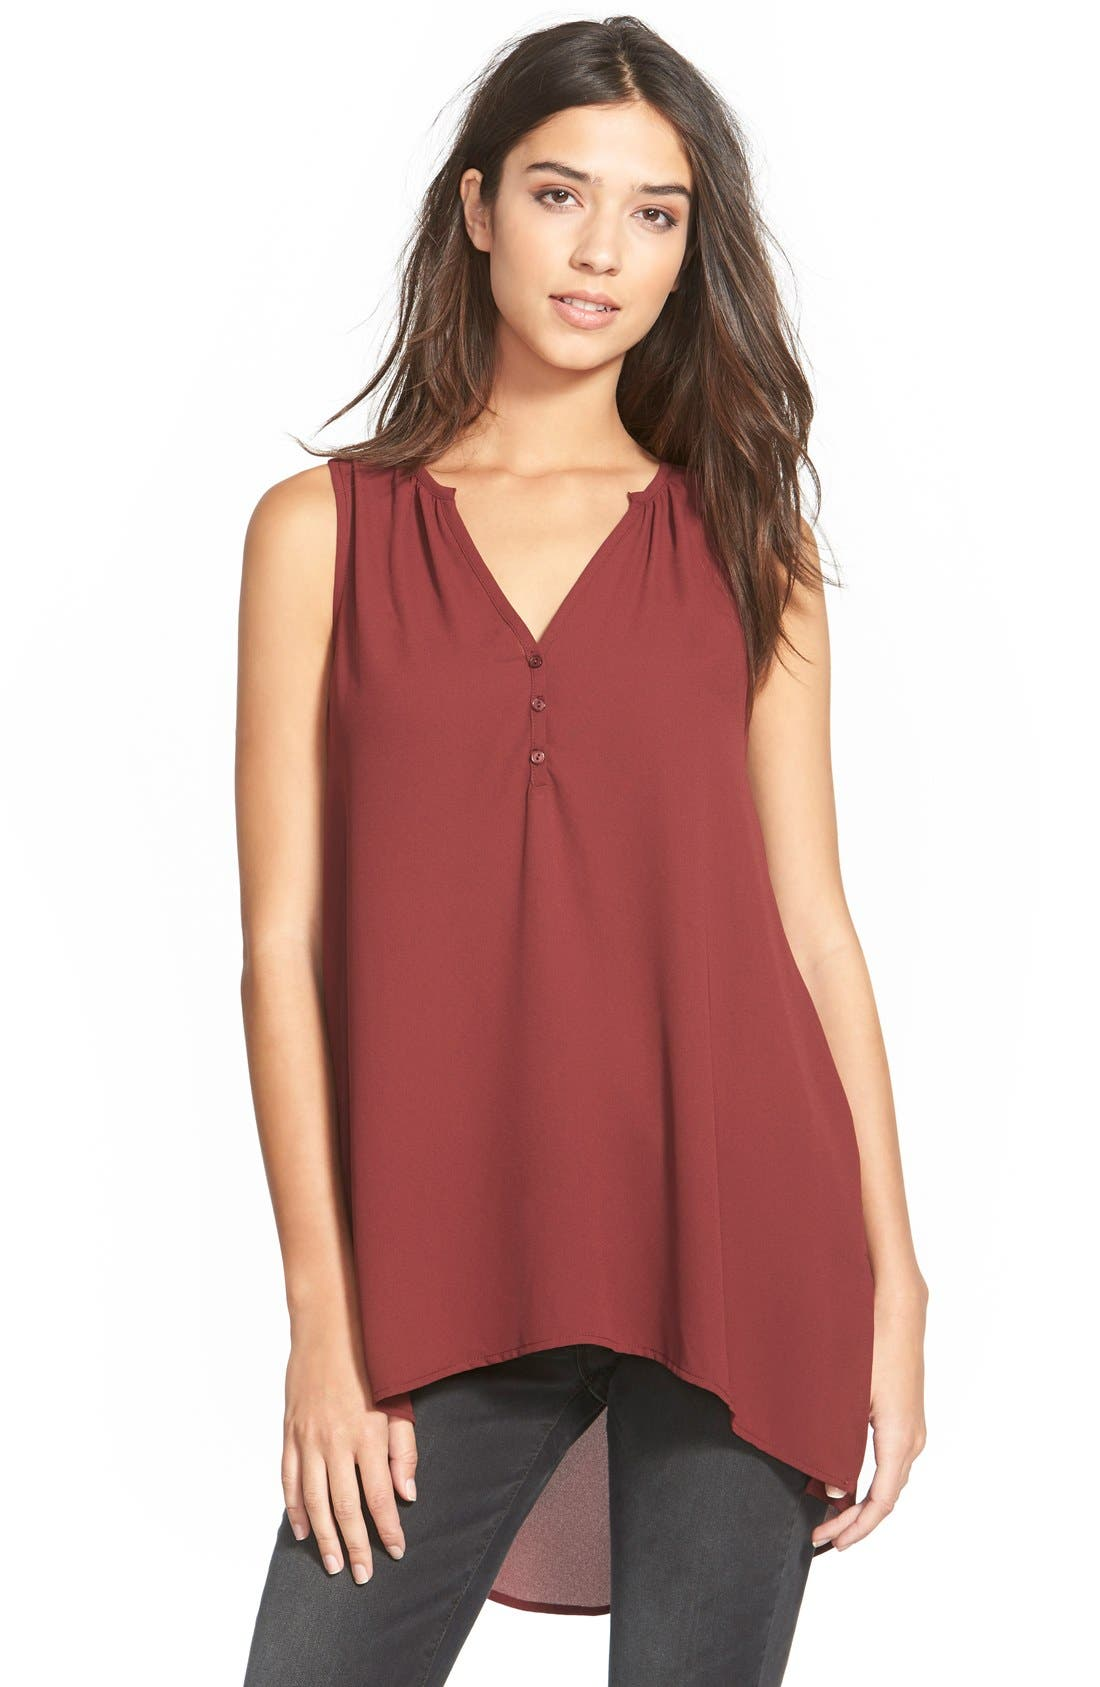 Alternate Image 1 Selected - Lush Sleeveless High/Low Tunic Top